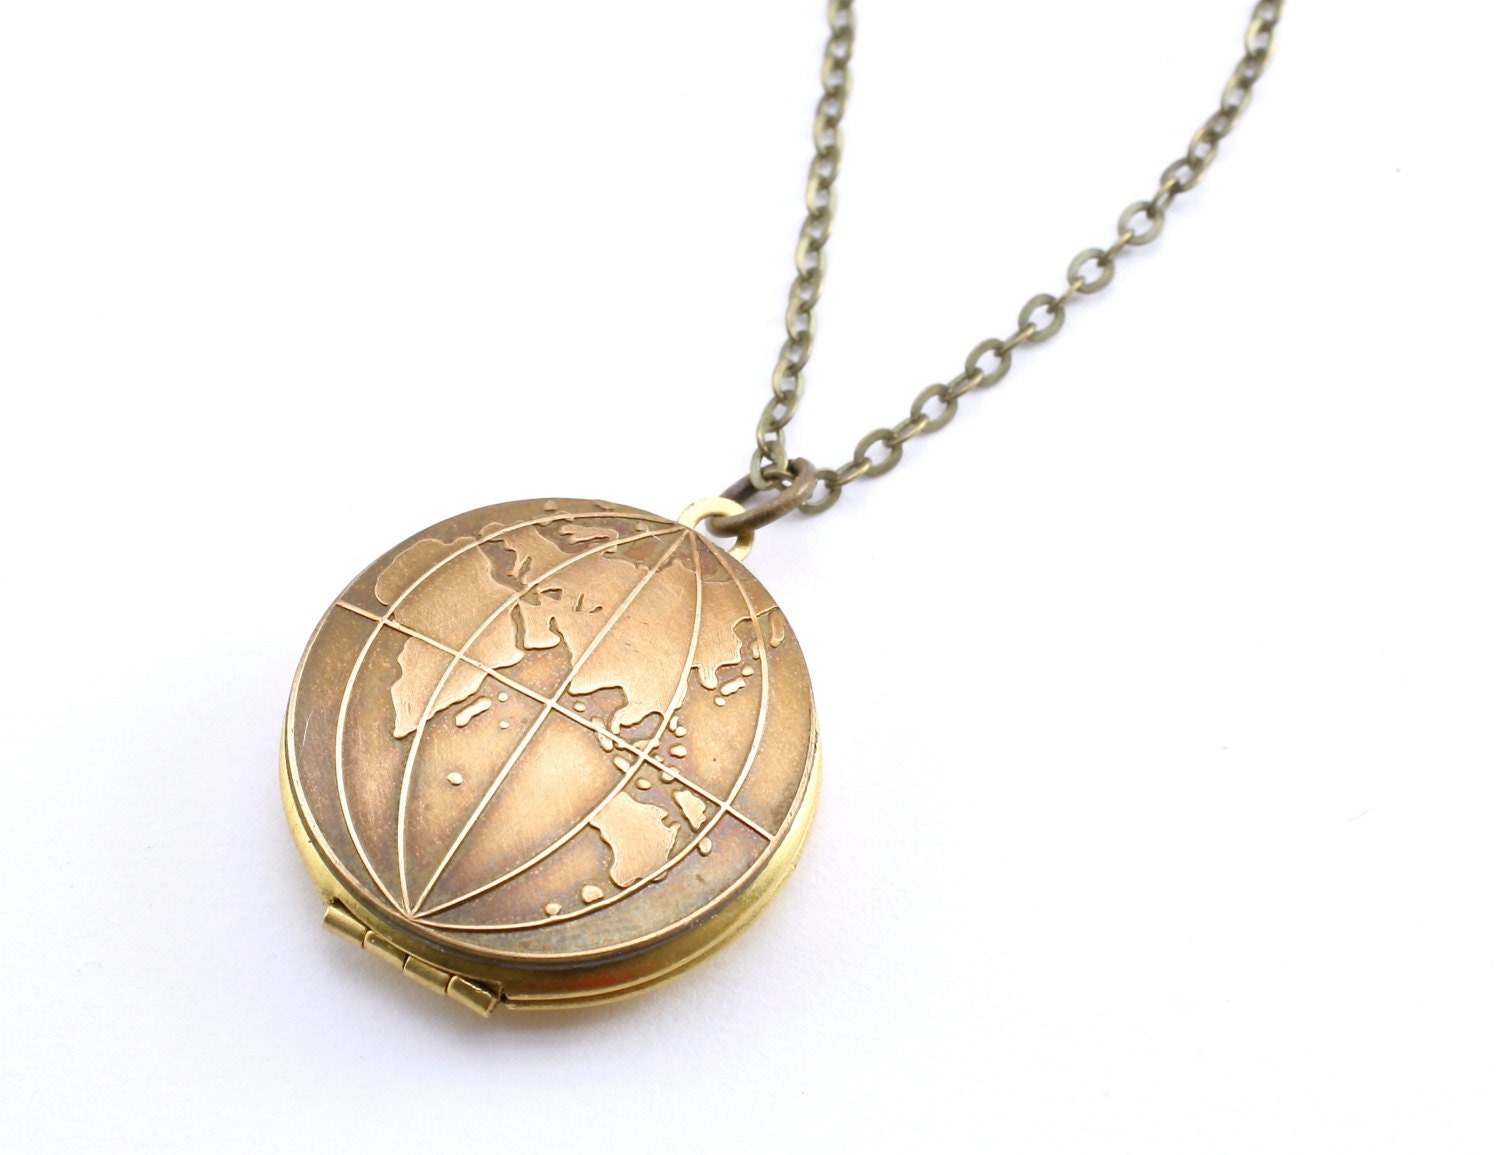 mynepshop lockets com gold locket necklace chain